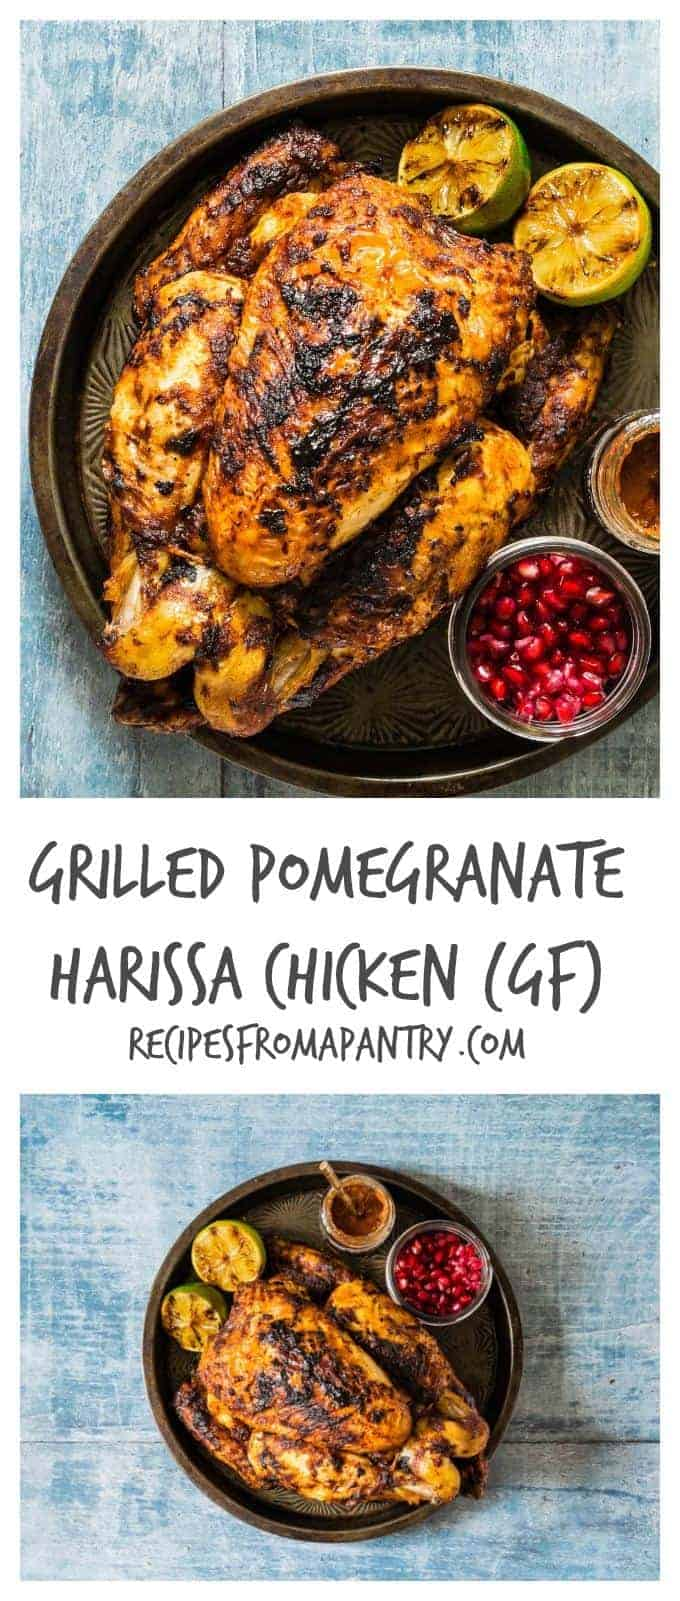 This grilled pomegranate harissa chicken recipe is just perfect for bbq's, picnics and week night suppers. Recipesfromapantry.com